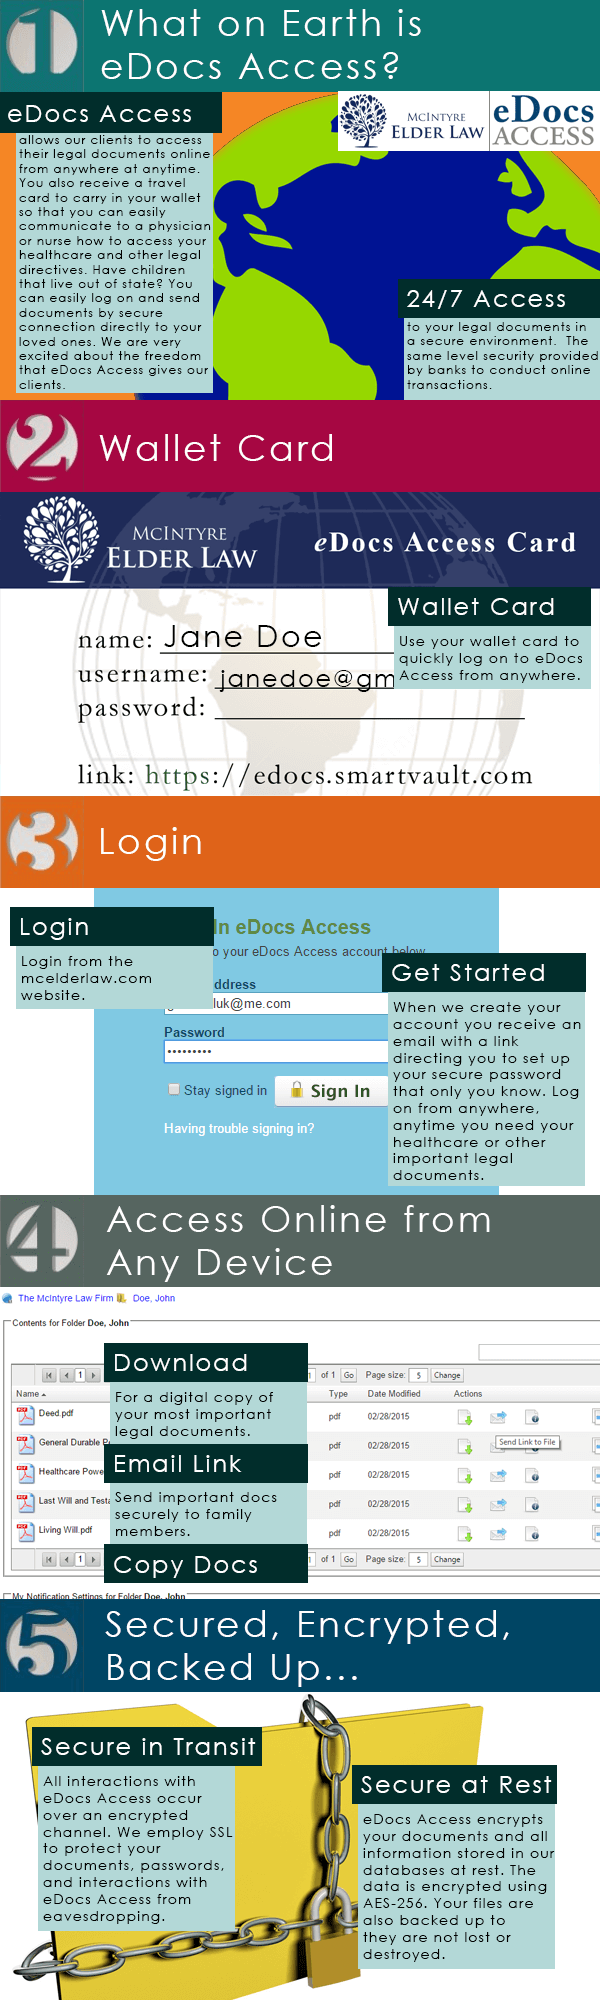 Explore eDocs Access in 5 easy steps.